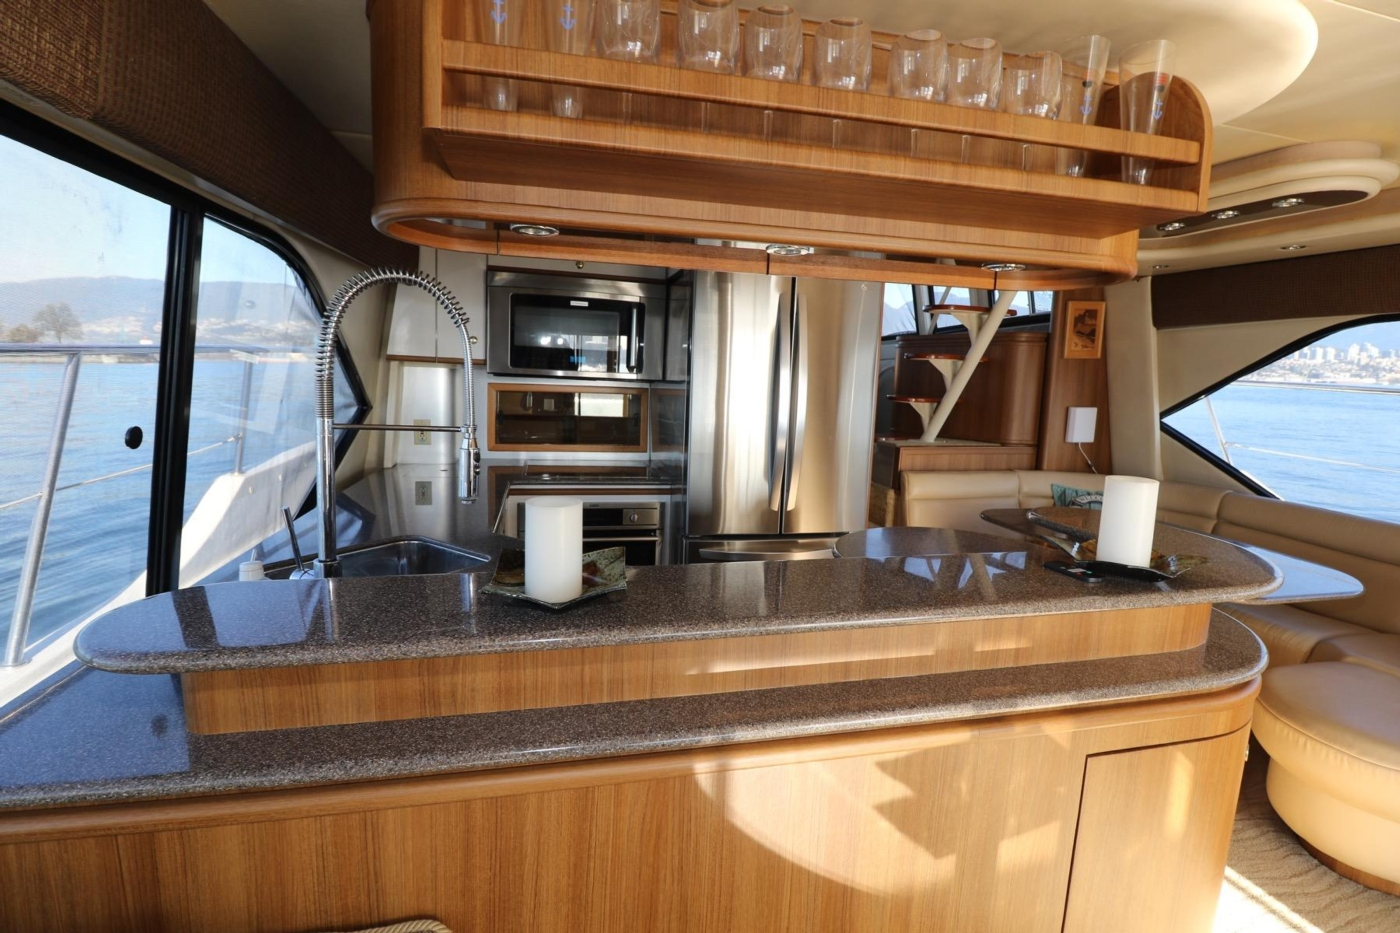 1999 Bayliner 5788 Pilot House Motoryacht, Galley Counter and Glass Storage